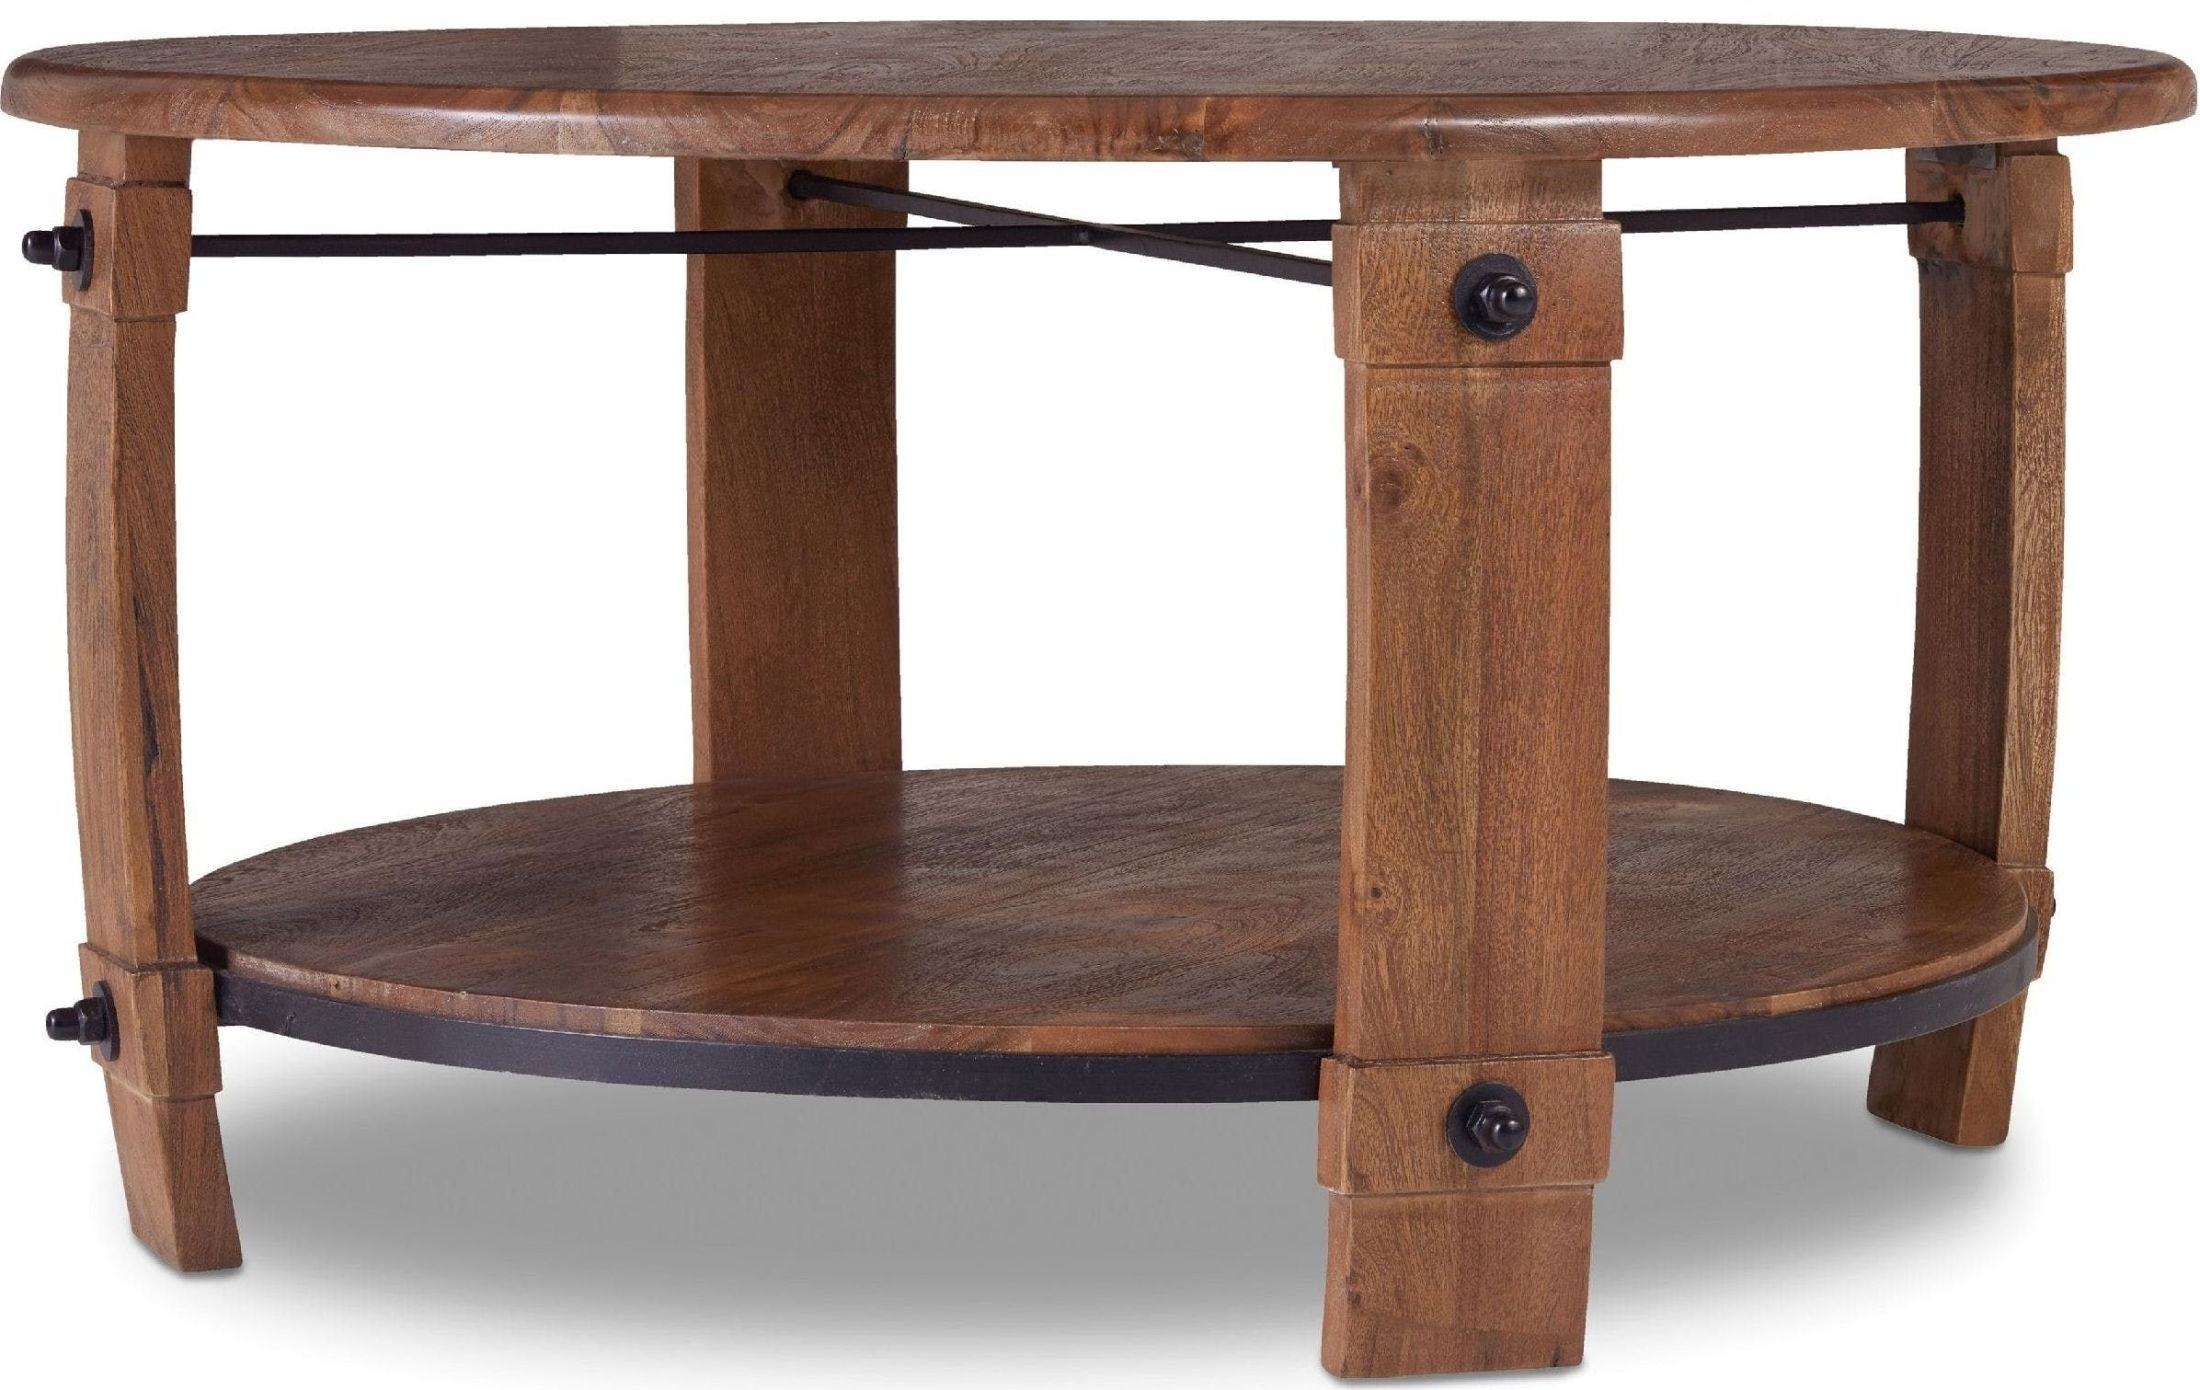 Glen Hurst Brown Round Wine Barrel Cocktail Table From Hooker For Current Exton Cocktail Tables (View 6 of 20)